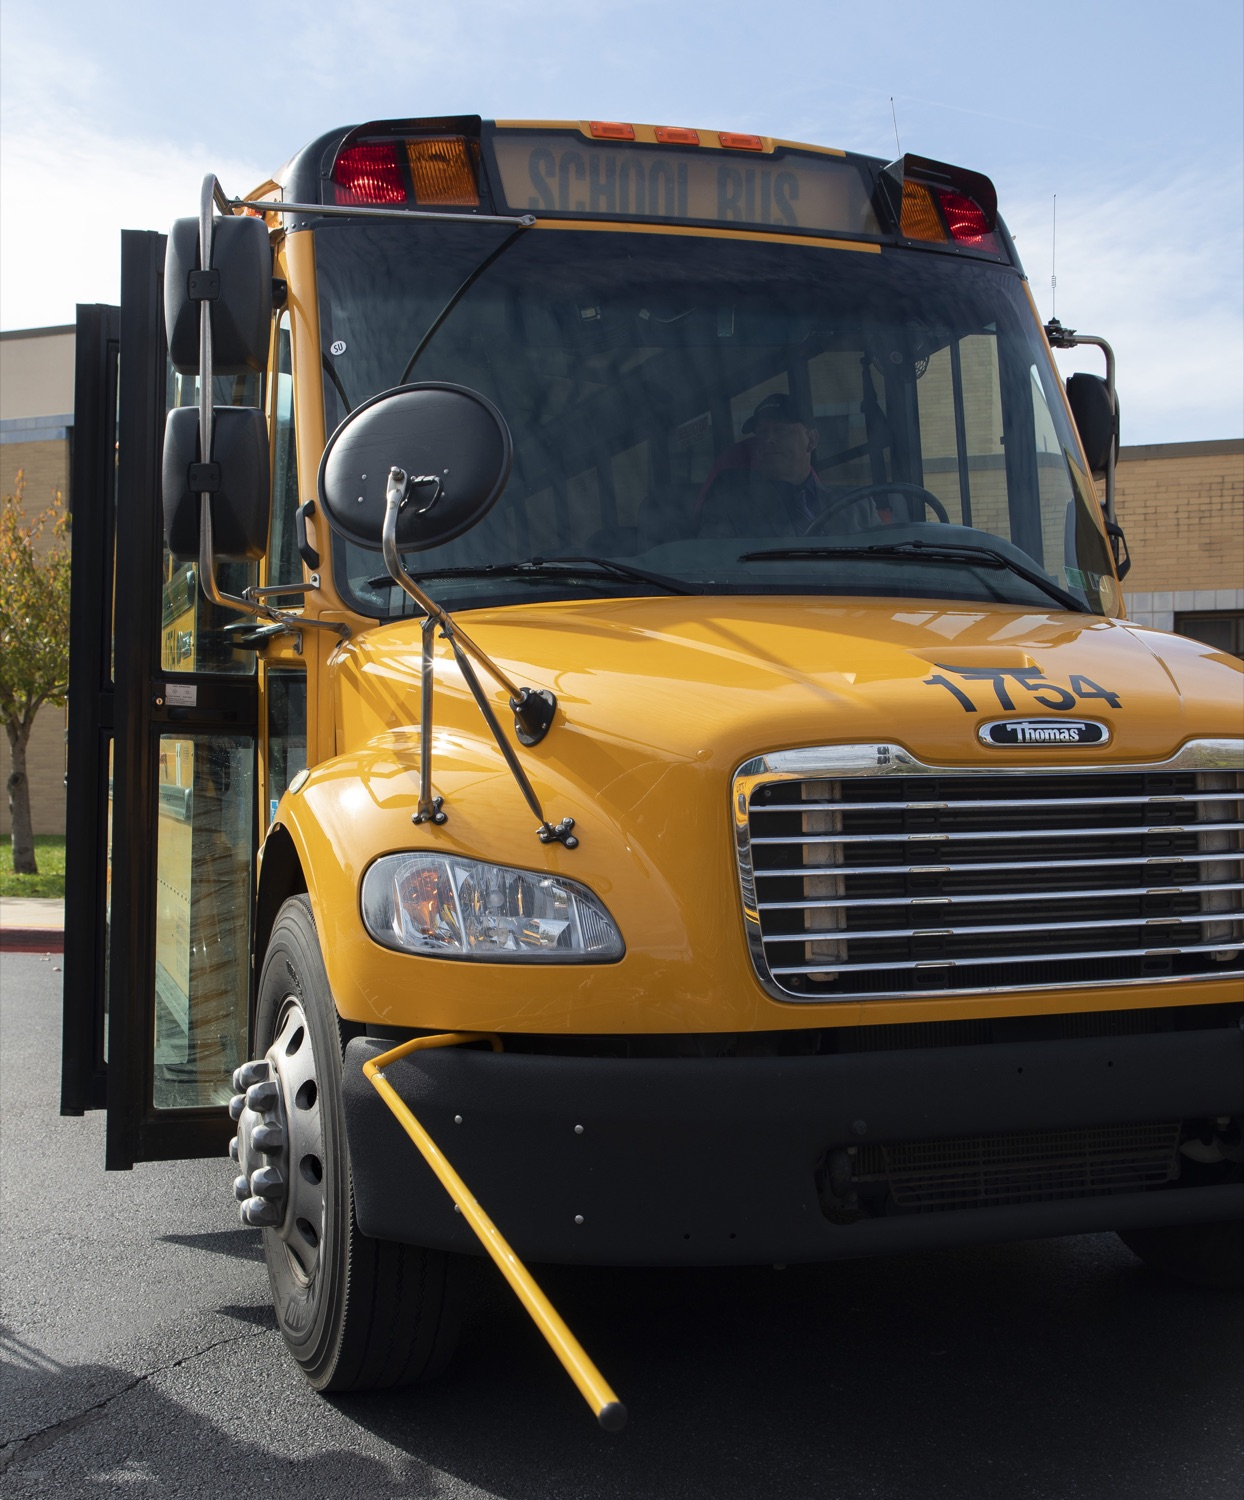 "<a href=""http://filesource.abacast.com/commonwealthofpa/photo/17458_pdot_safeStop_0009.jpg"" target=""_blank"">⇣ Download Photo<br></a>Wolf Administration Stresses School Bus Safety, Announces Results of Enforcement Initiative"